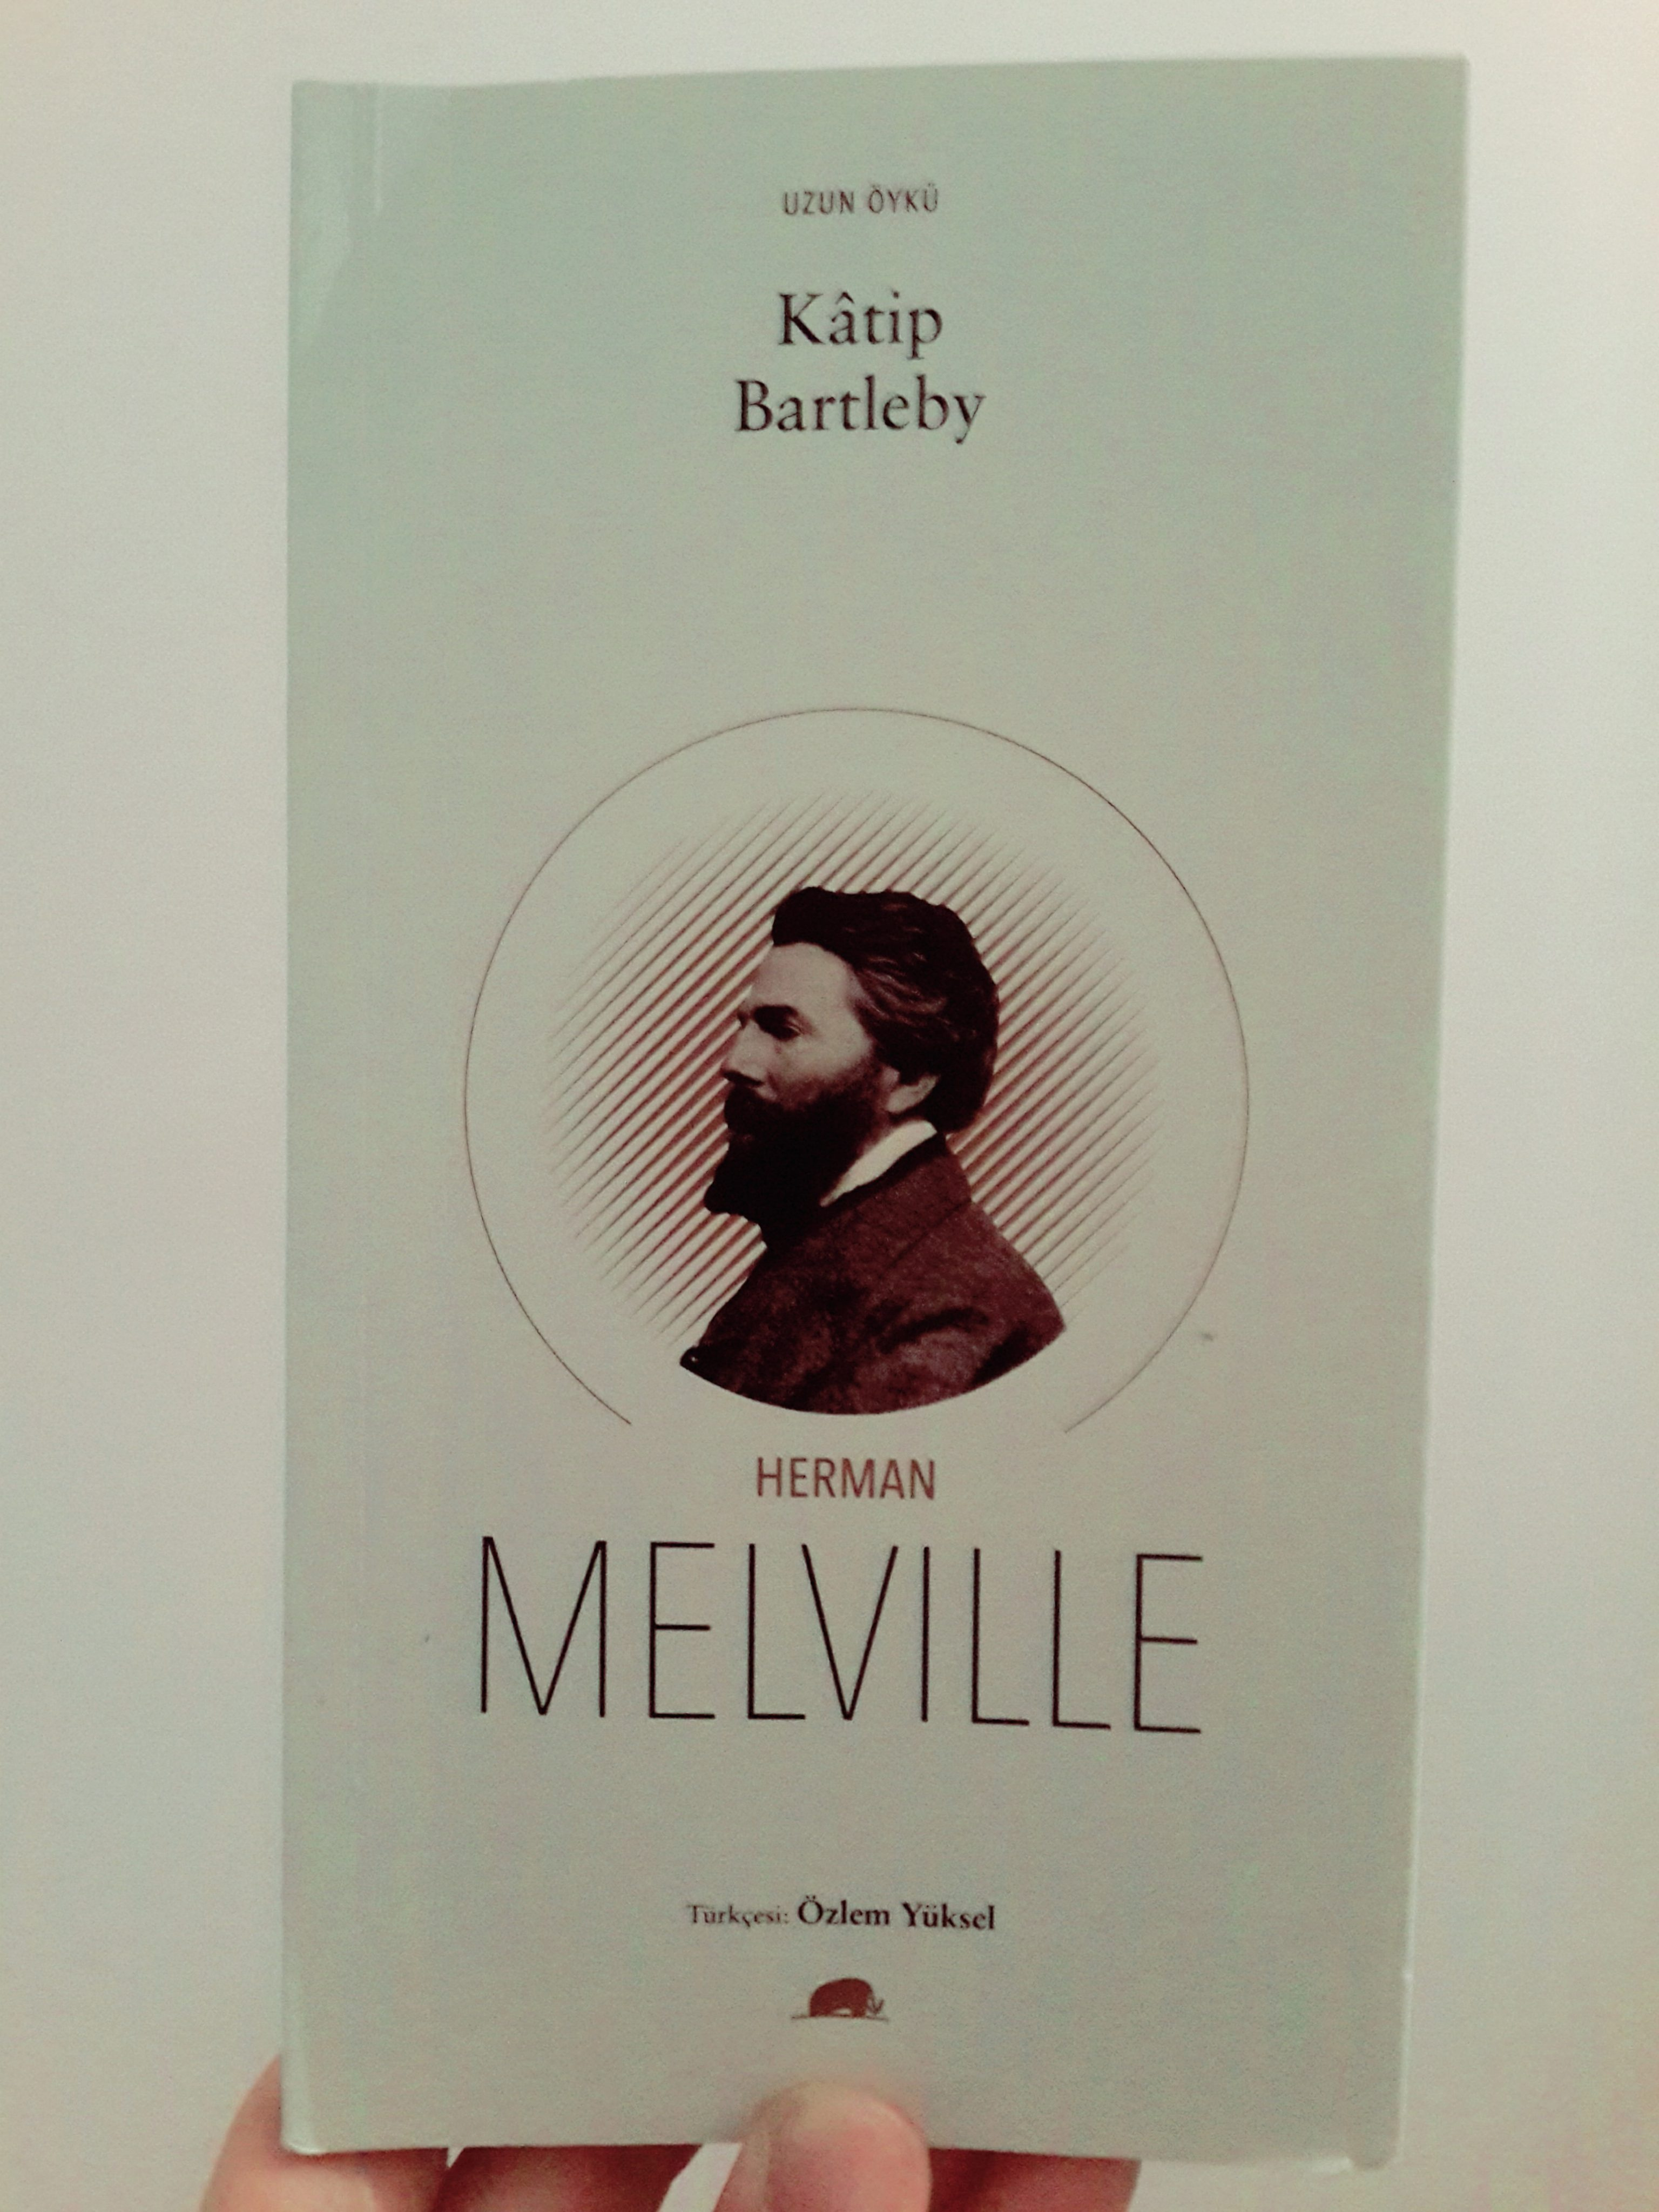 bartleby the hero in herman melvilles short Find all the books, read about the author, and more.